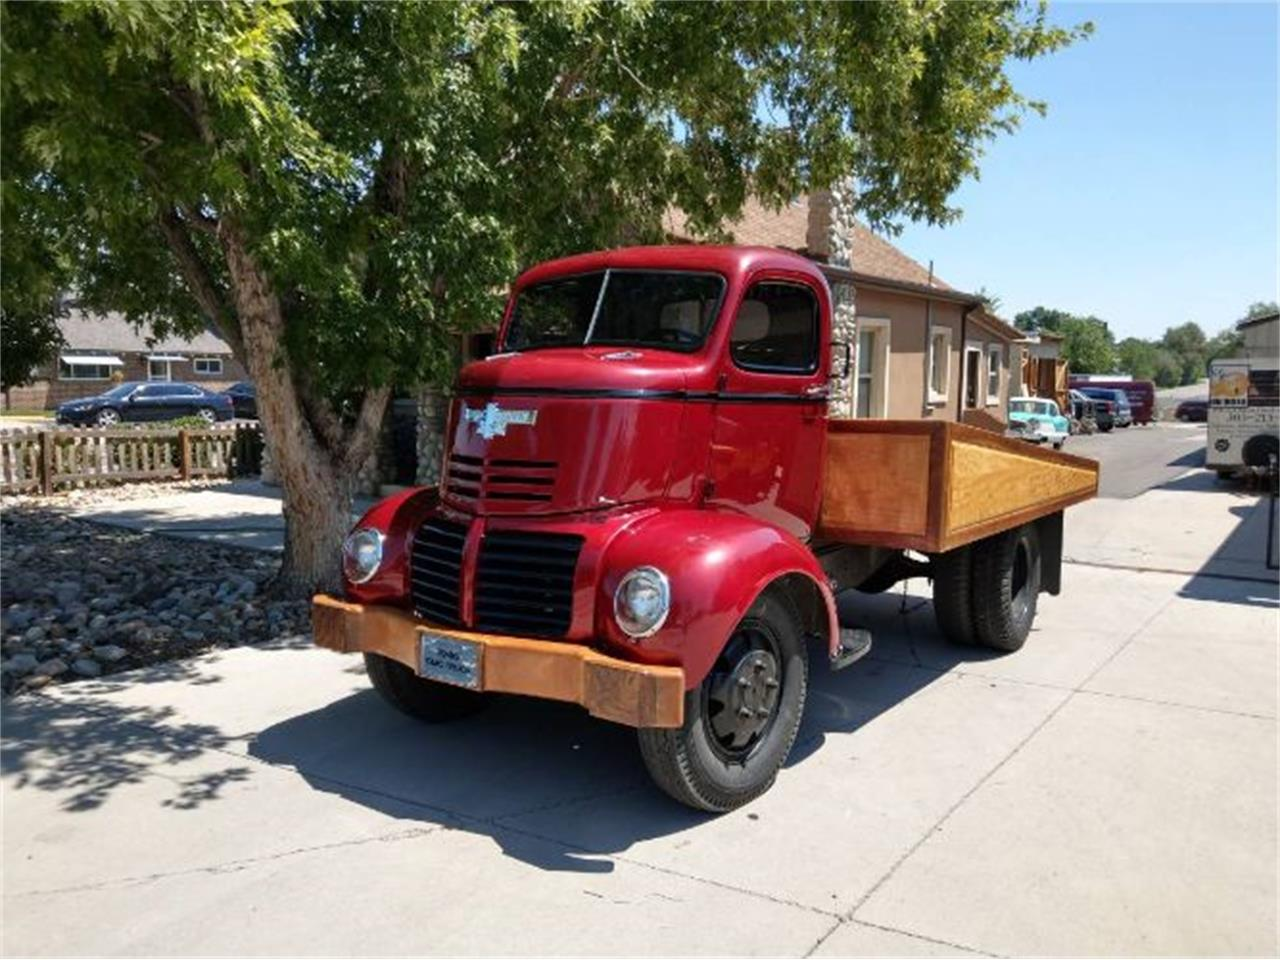 for sale 1941 gmc truck in cadillac, michigan cars - cadillac, mi at geebo